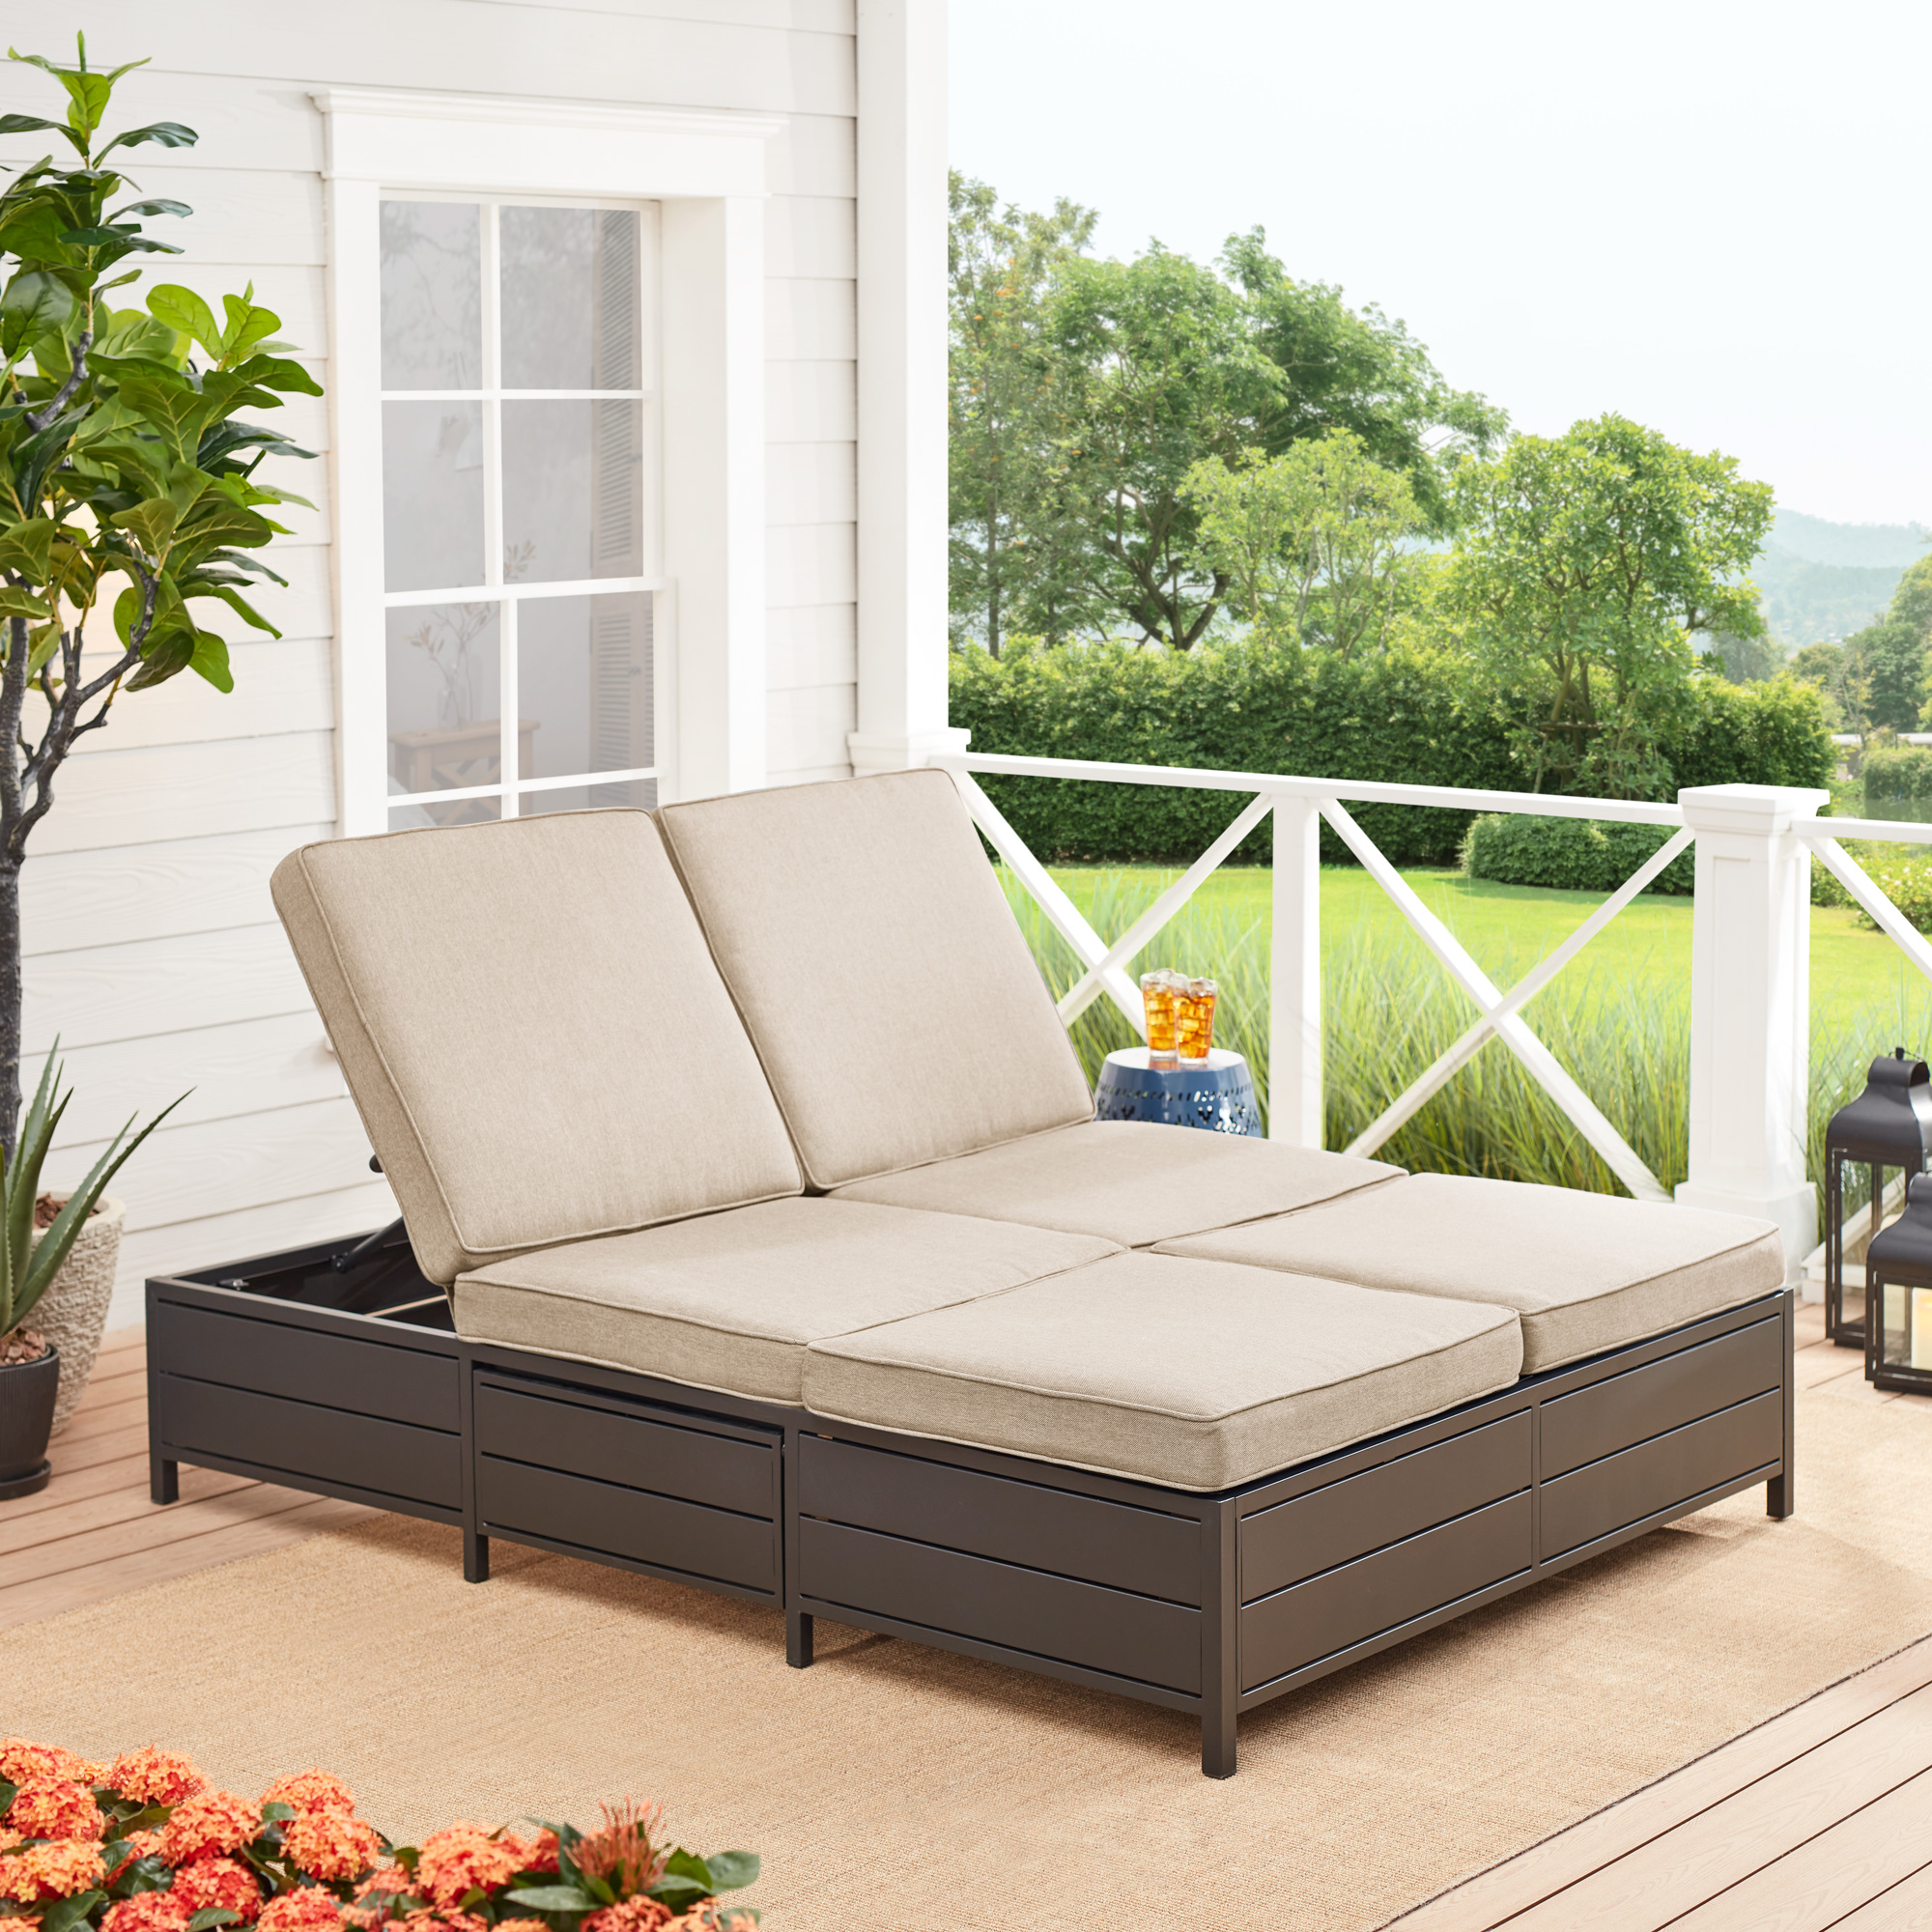 Mainstays Outdoor Patio Double Chaise Lounge Bench